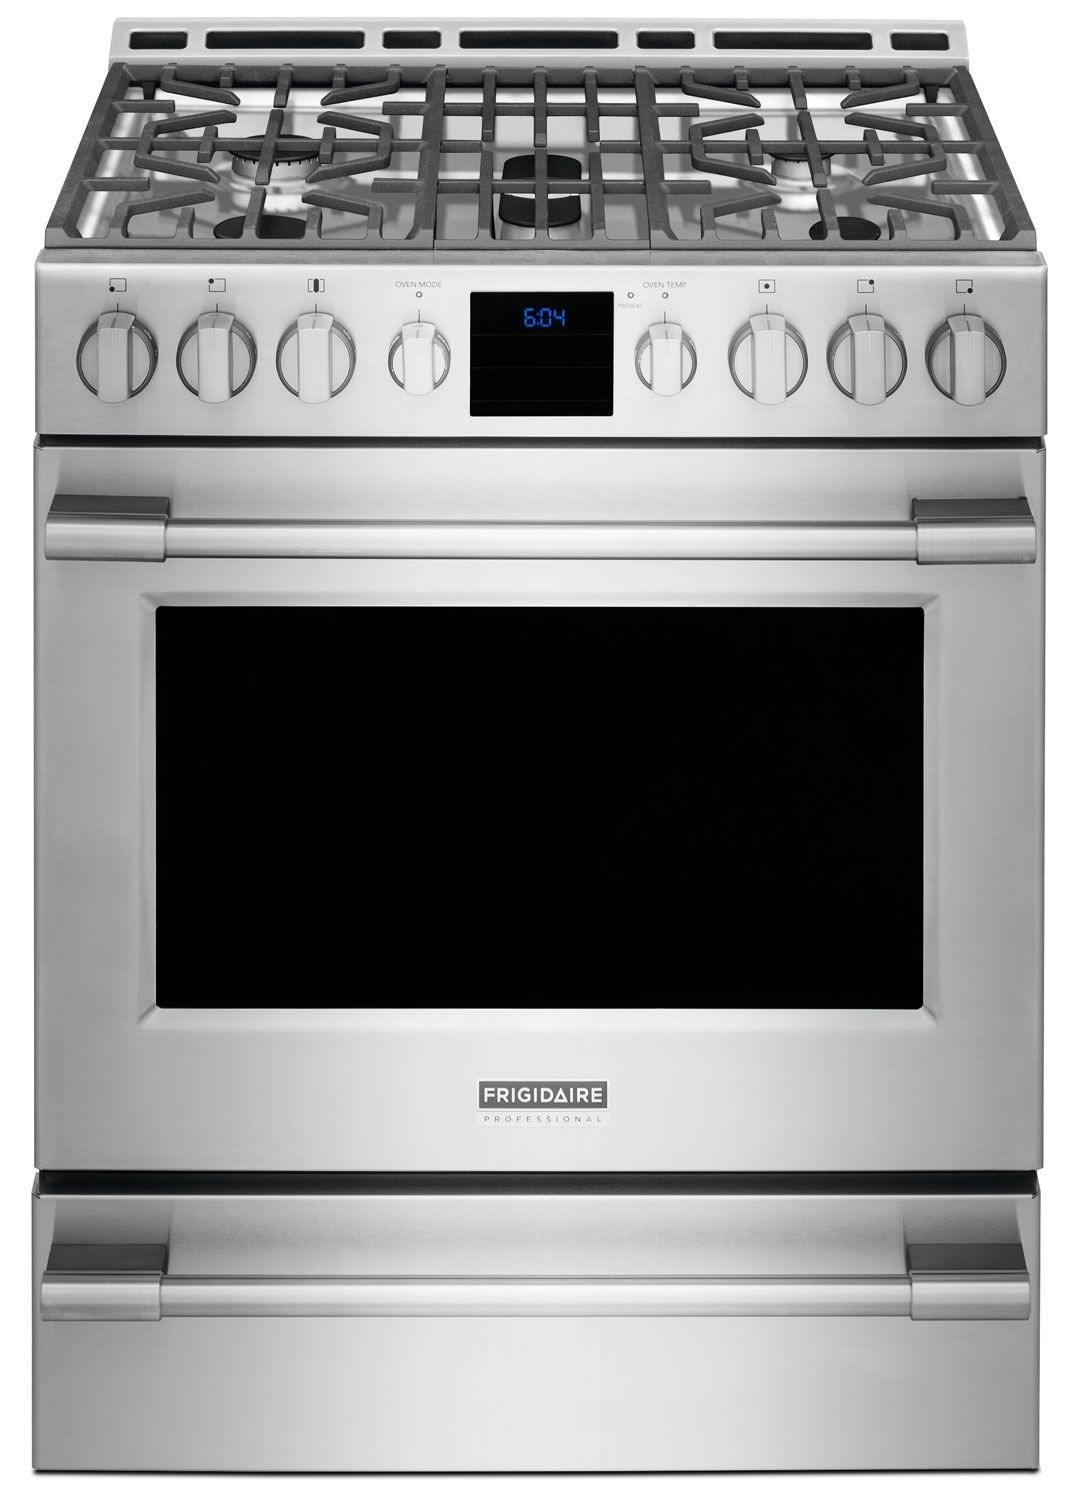 Cooking Products - Frigidaire Professional® 30'' Front-Control Freestanding Gas Range - Stainless Steel